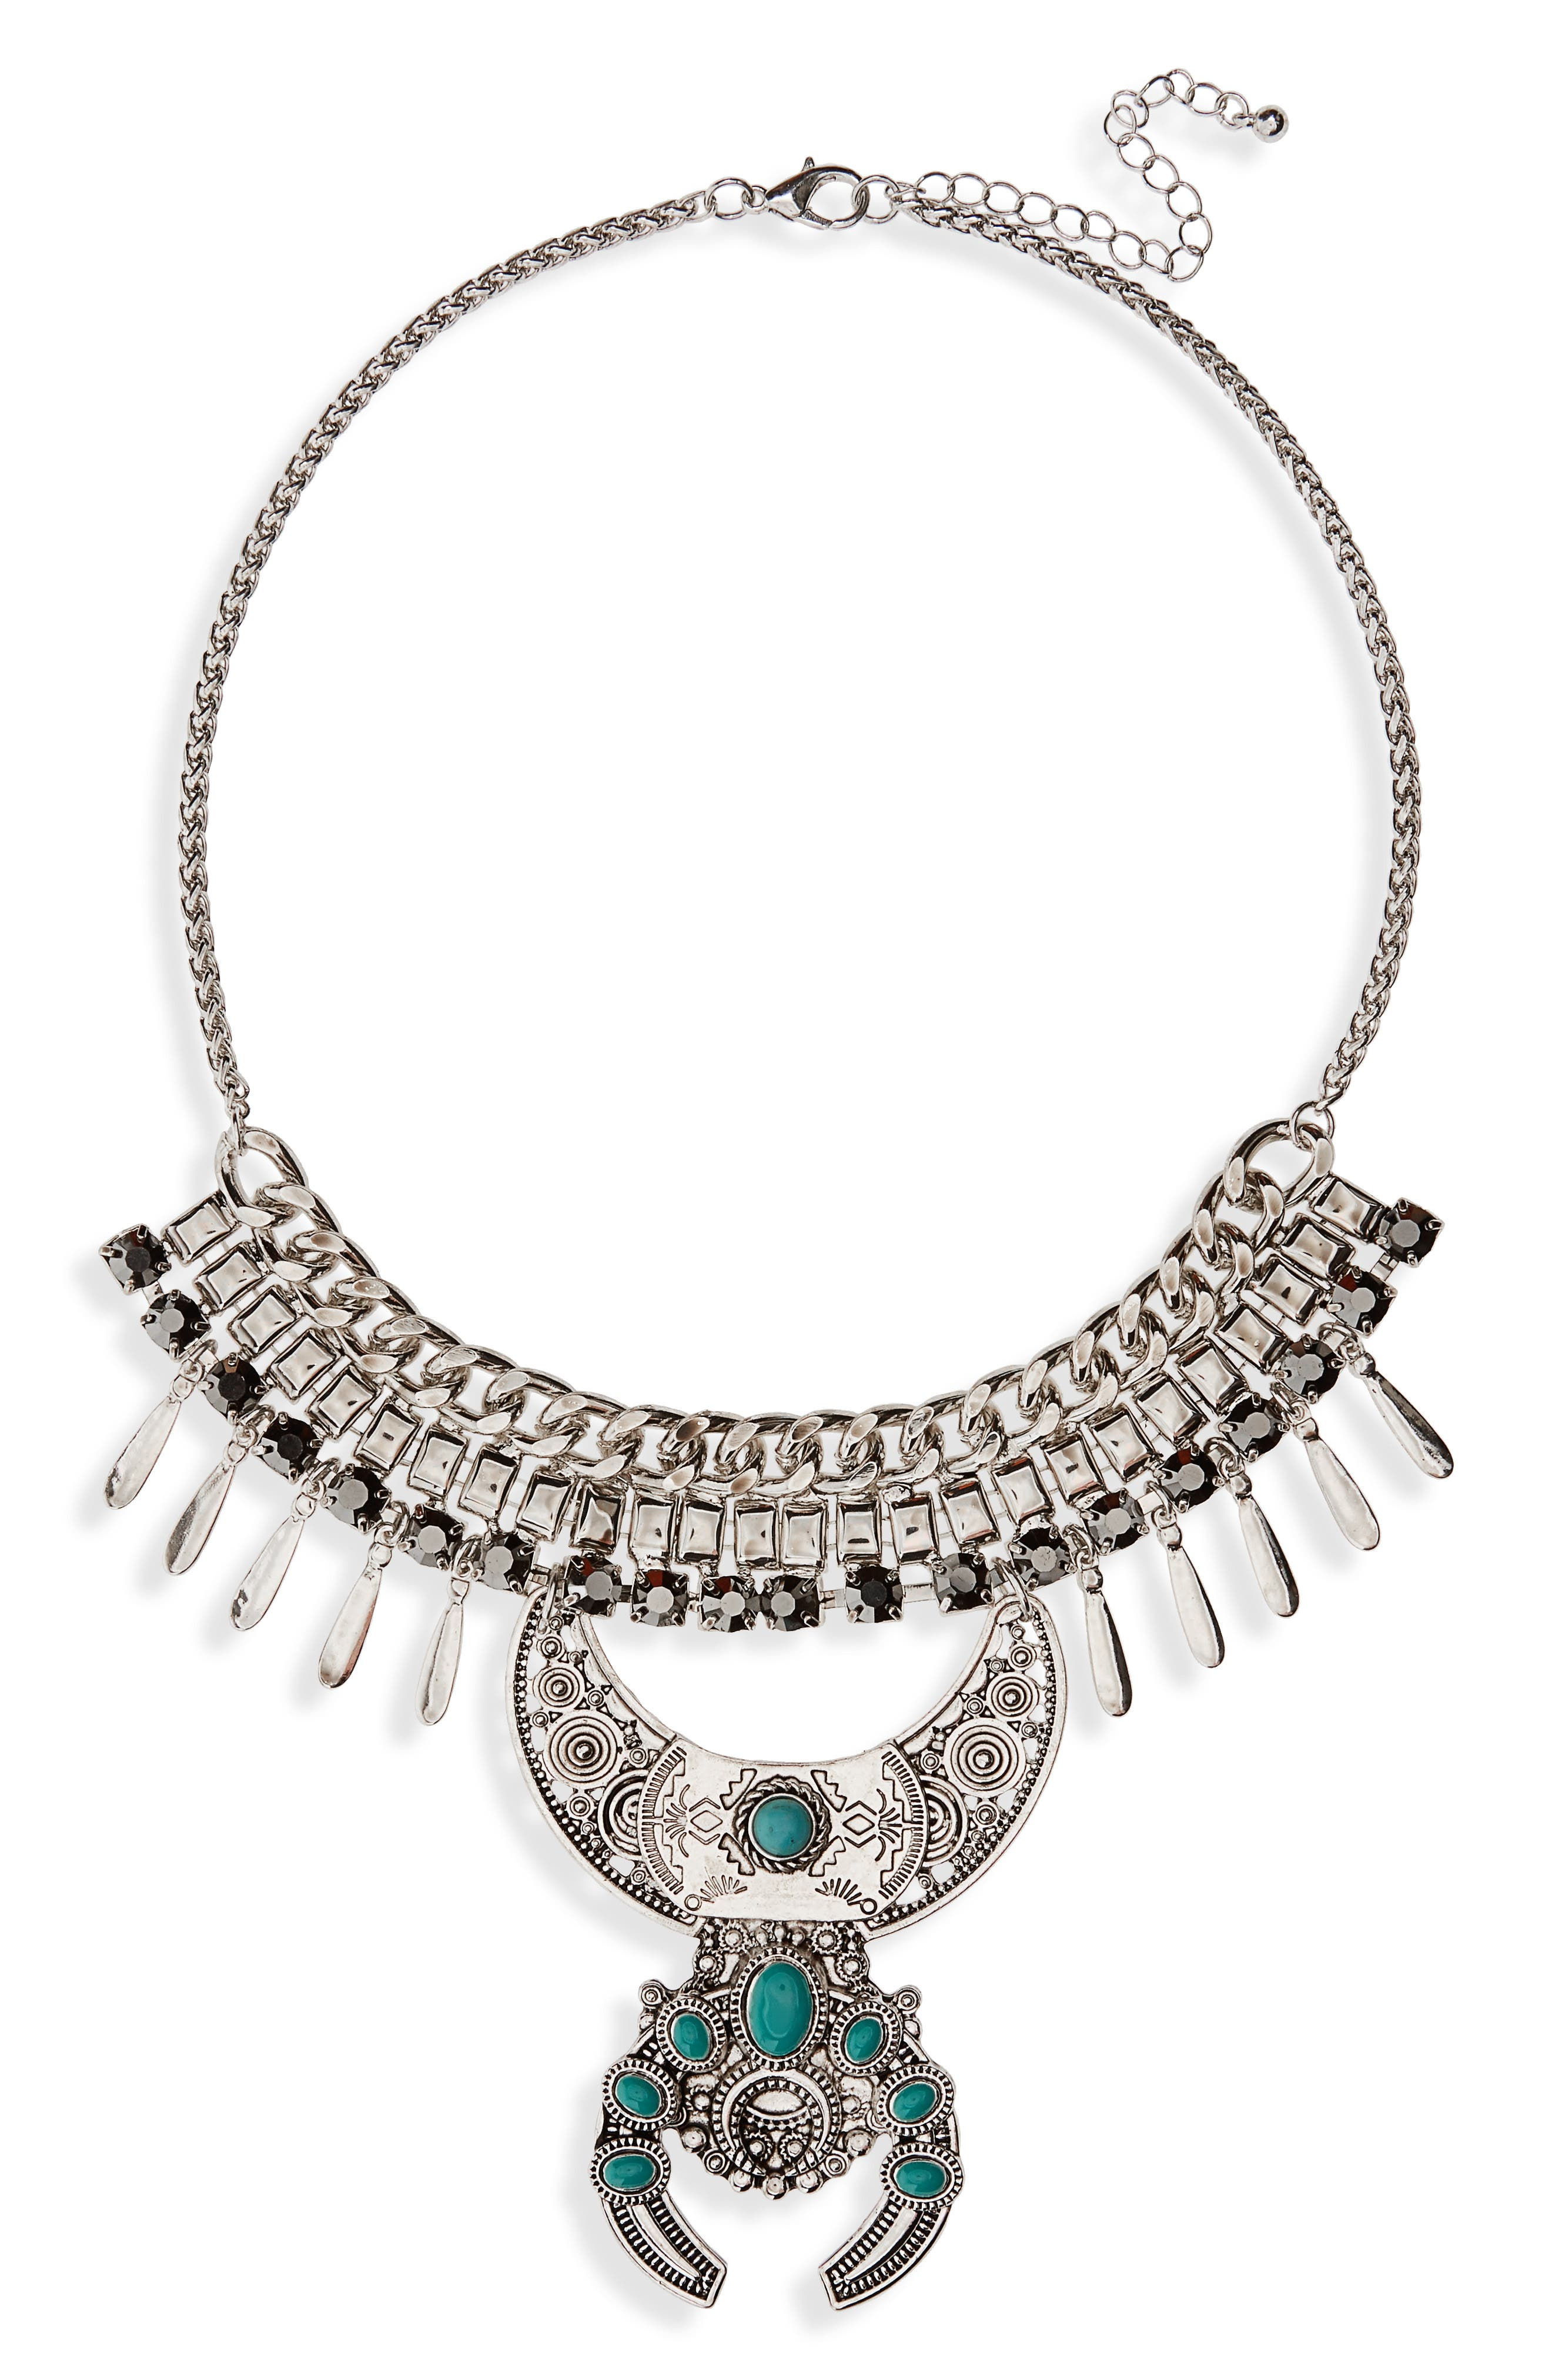 Etched Charm Statement Necklace,                             Main thumbnail 1, color,                             Burnish Silver/ Turquoise